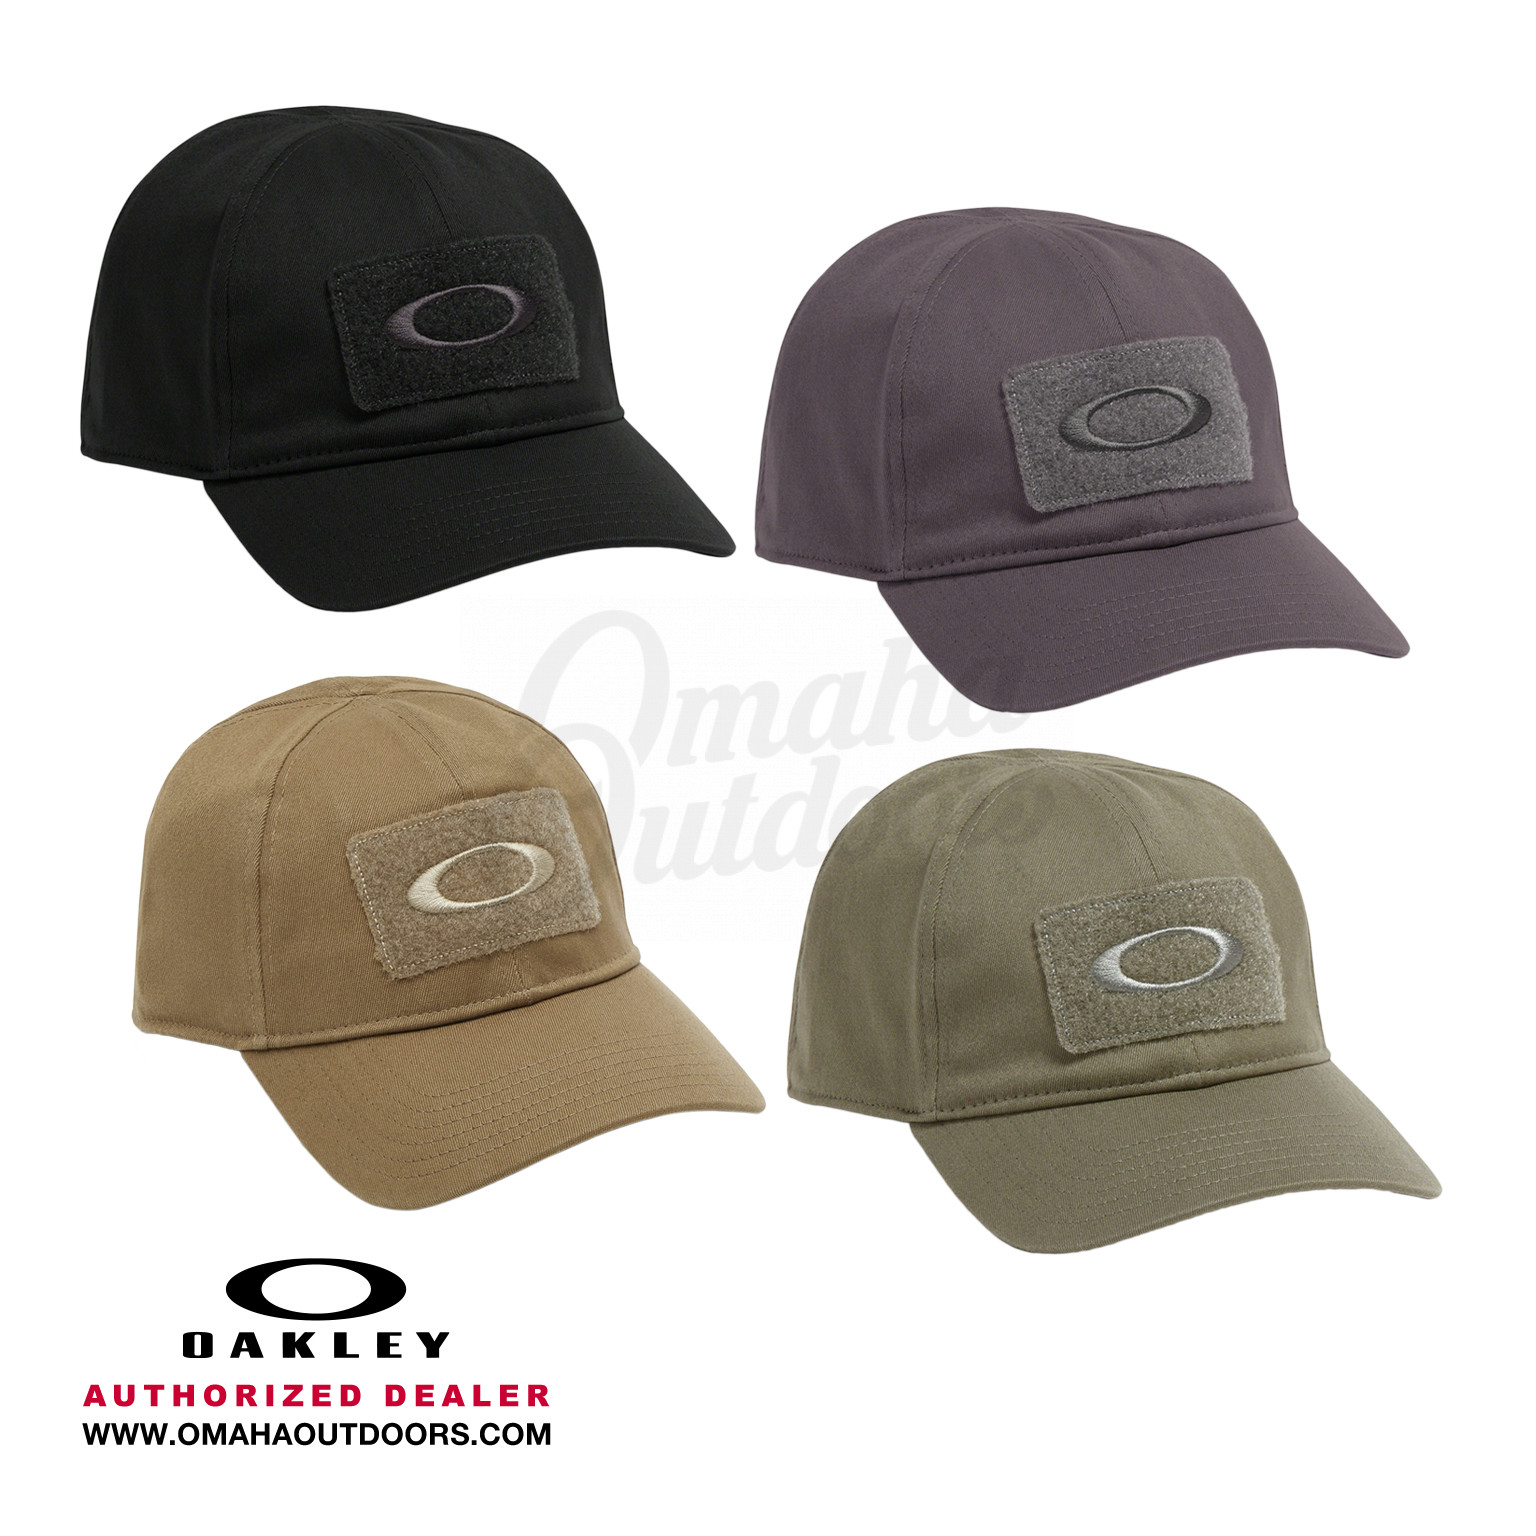 Oakley Standard Issue Cotton Cap Hook and Loop Patch Embroidery Logo 911630 59533f73e556